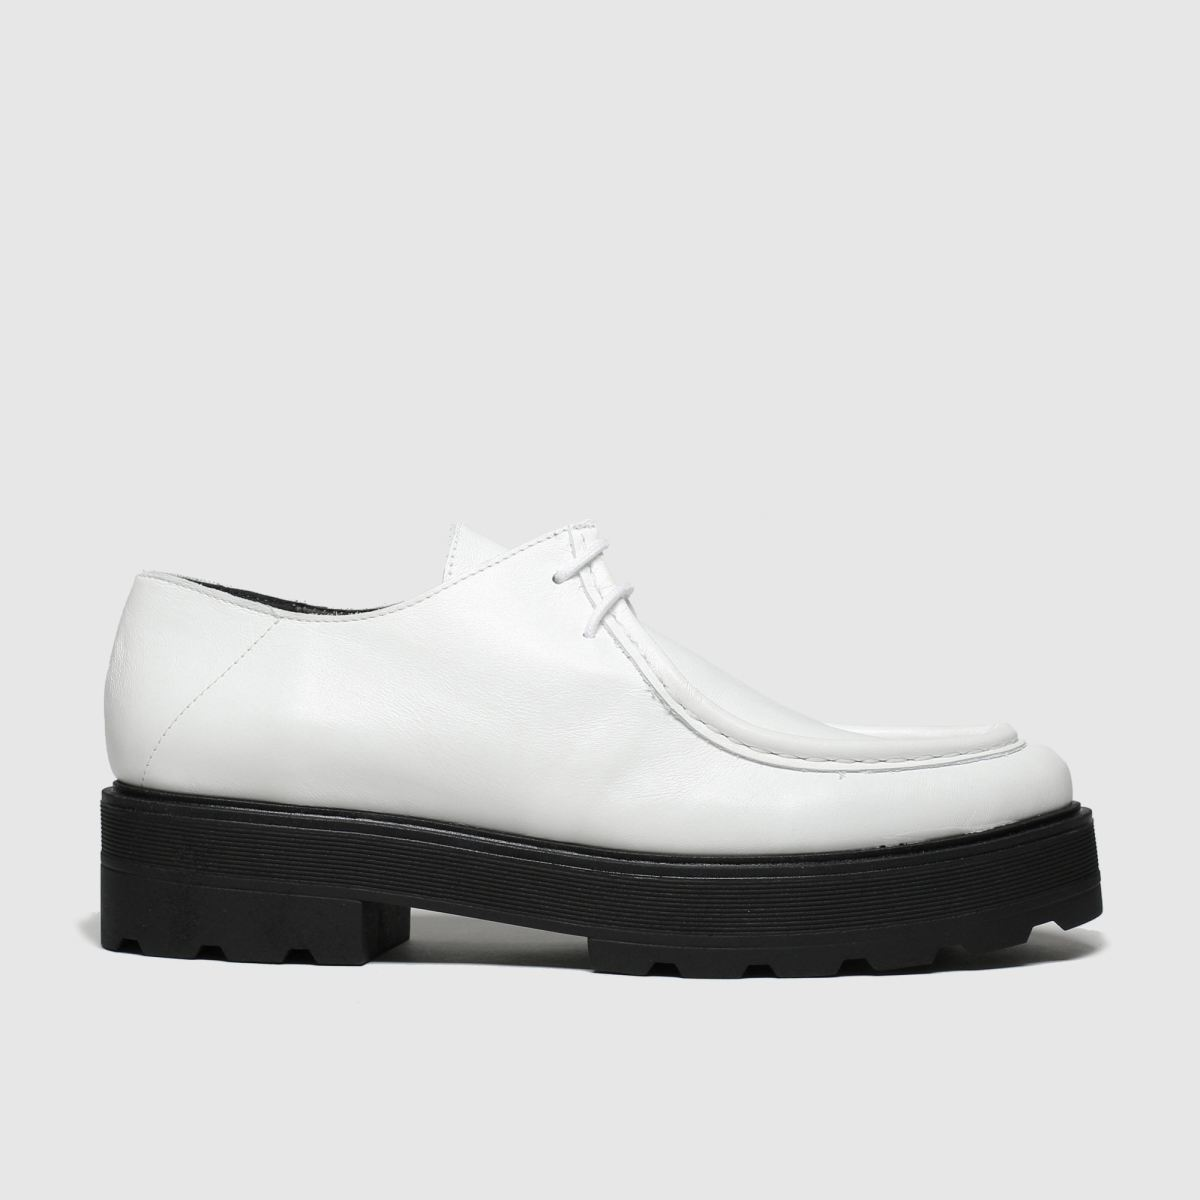 Red Or Dead White Colton Flat Shoes